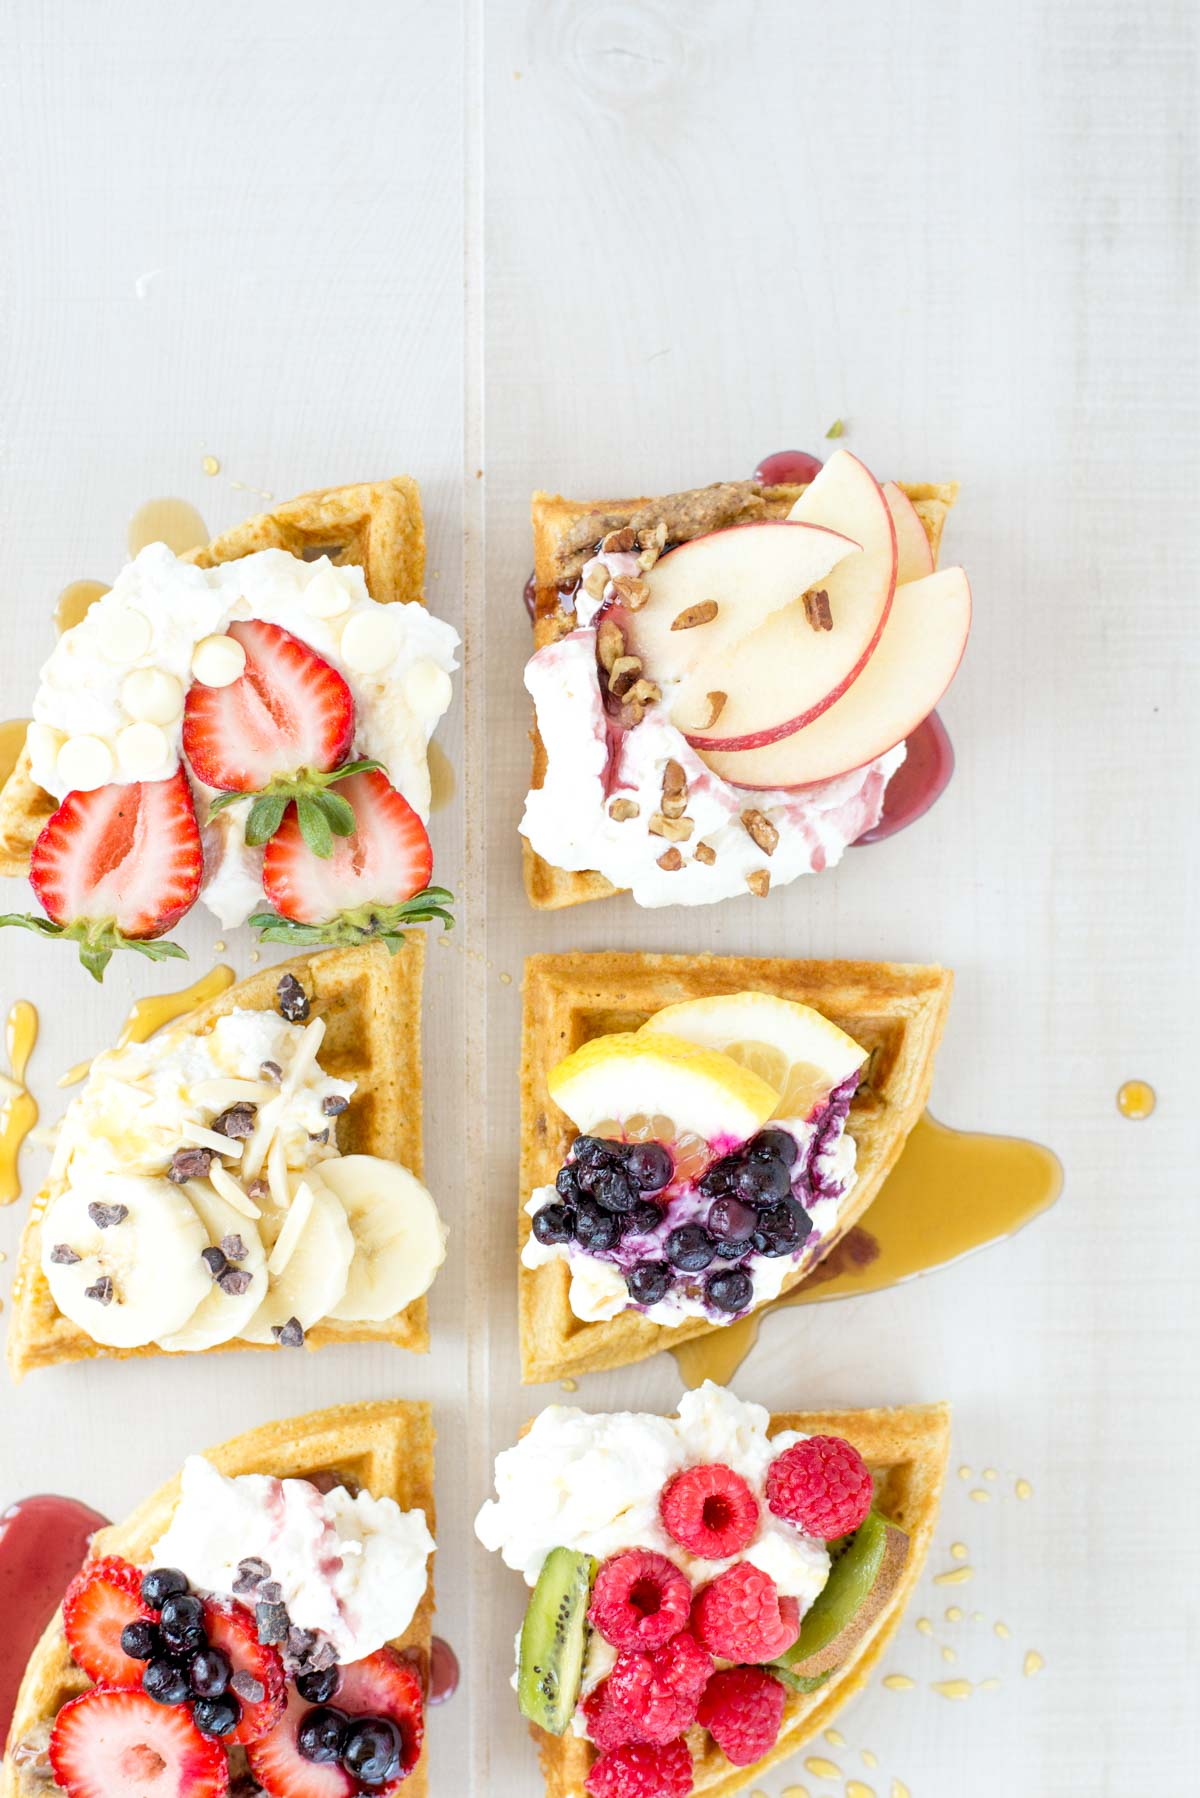 The fastest gluten-free waffles you'll ever make. Five minutes and six pantry staples and breakfast awaits.